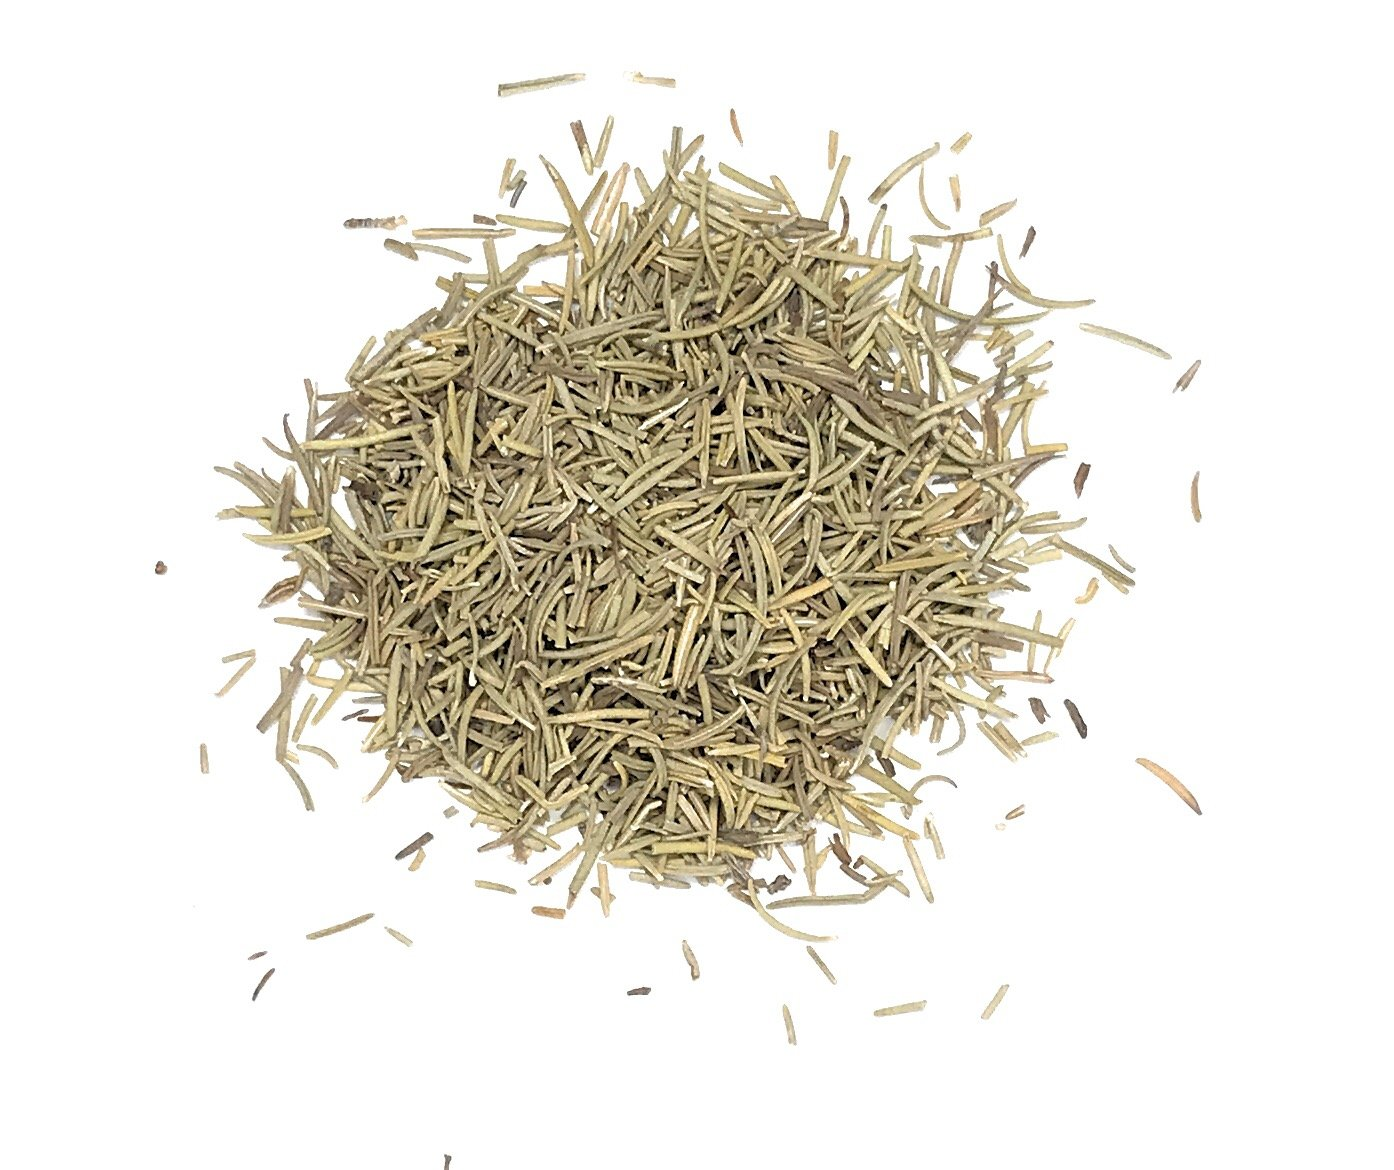 bMAKER Rosemary Premium Dried Herb 1 lb - Kosher Certified & Edible Food Grade- Best for Cooking, Seasoning for Your Steak, Chicken